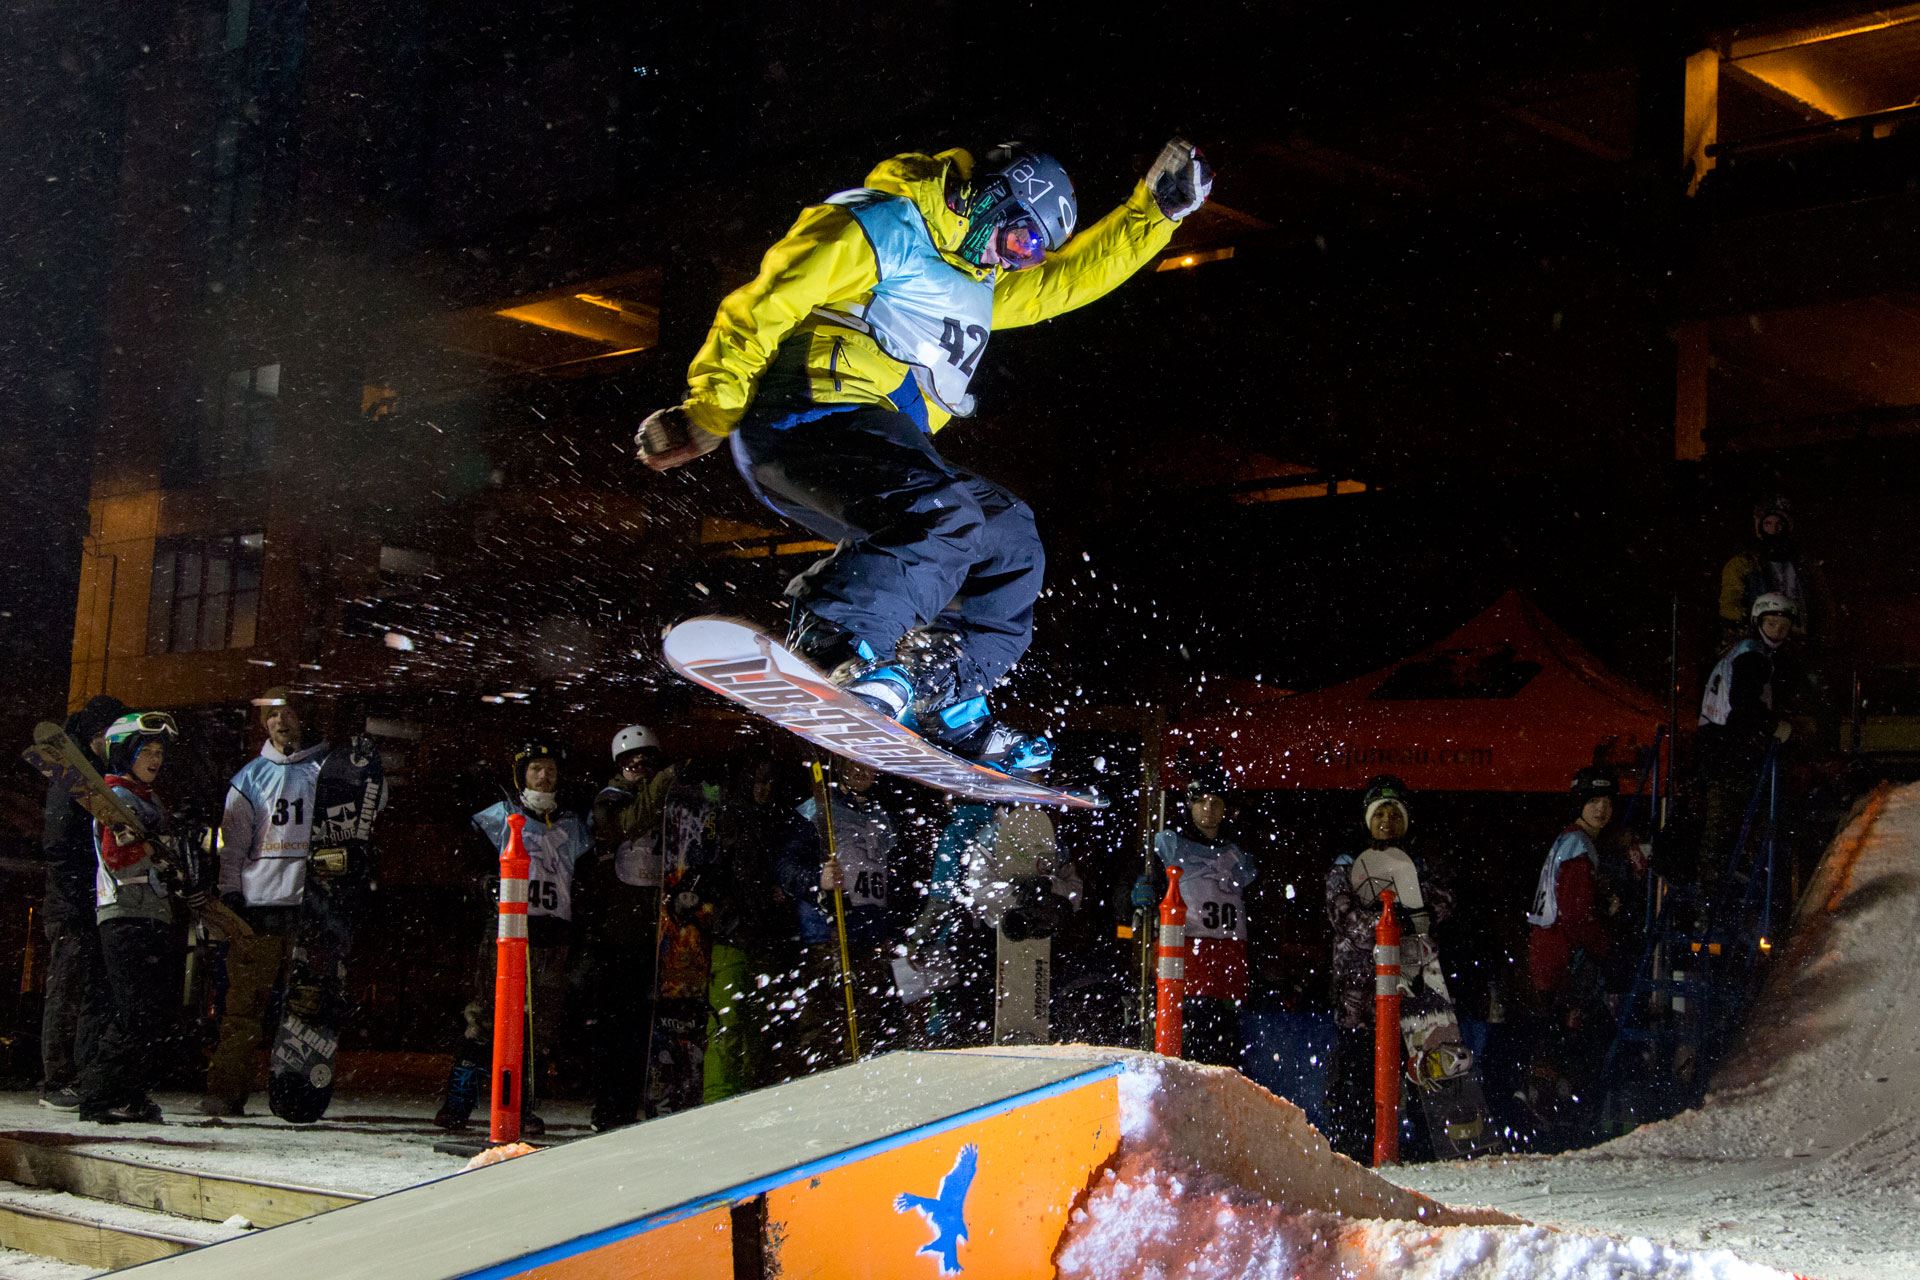 42 - Christian, soars over the box at the Downtown Rail Jam Dec. 19th. (Photo by Mikko Wilson/KTOO)